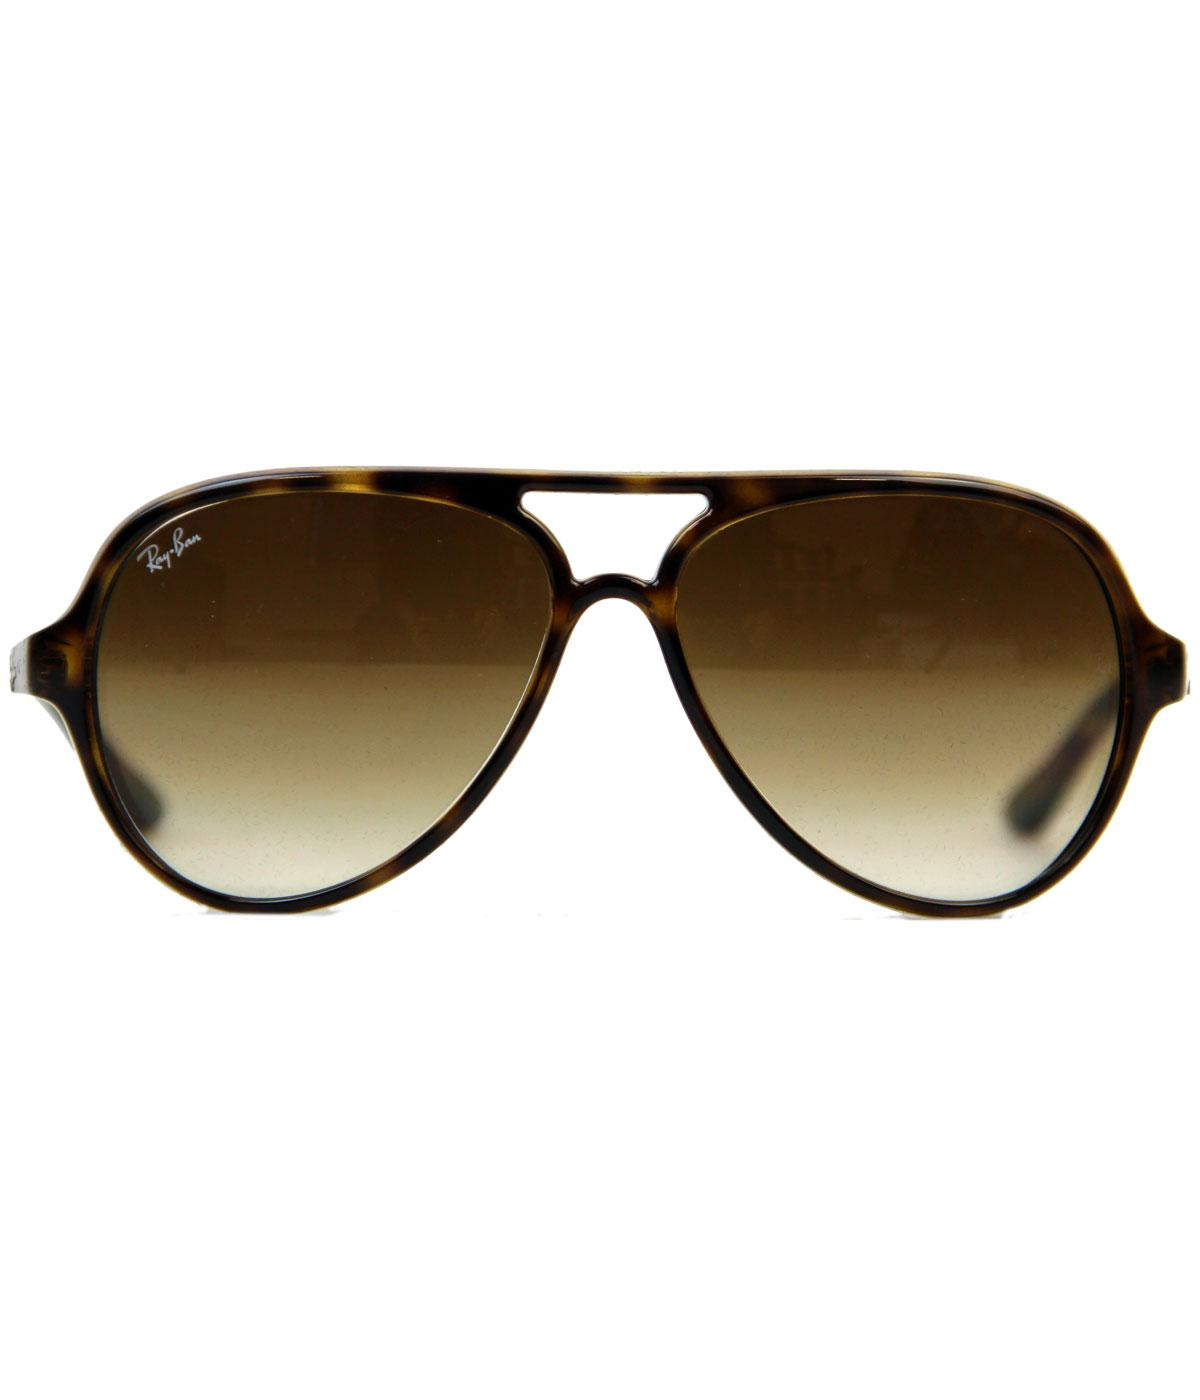 Cats 5000 Ray-Ban Retro Mod Aviator Sunglasses -Br